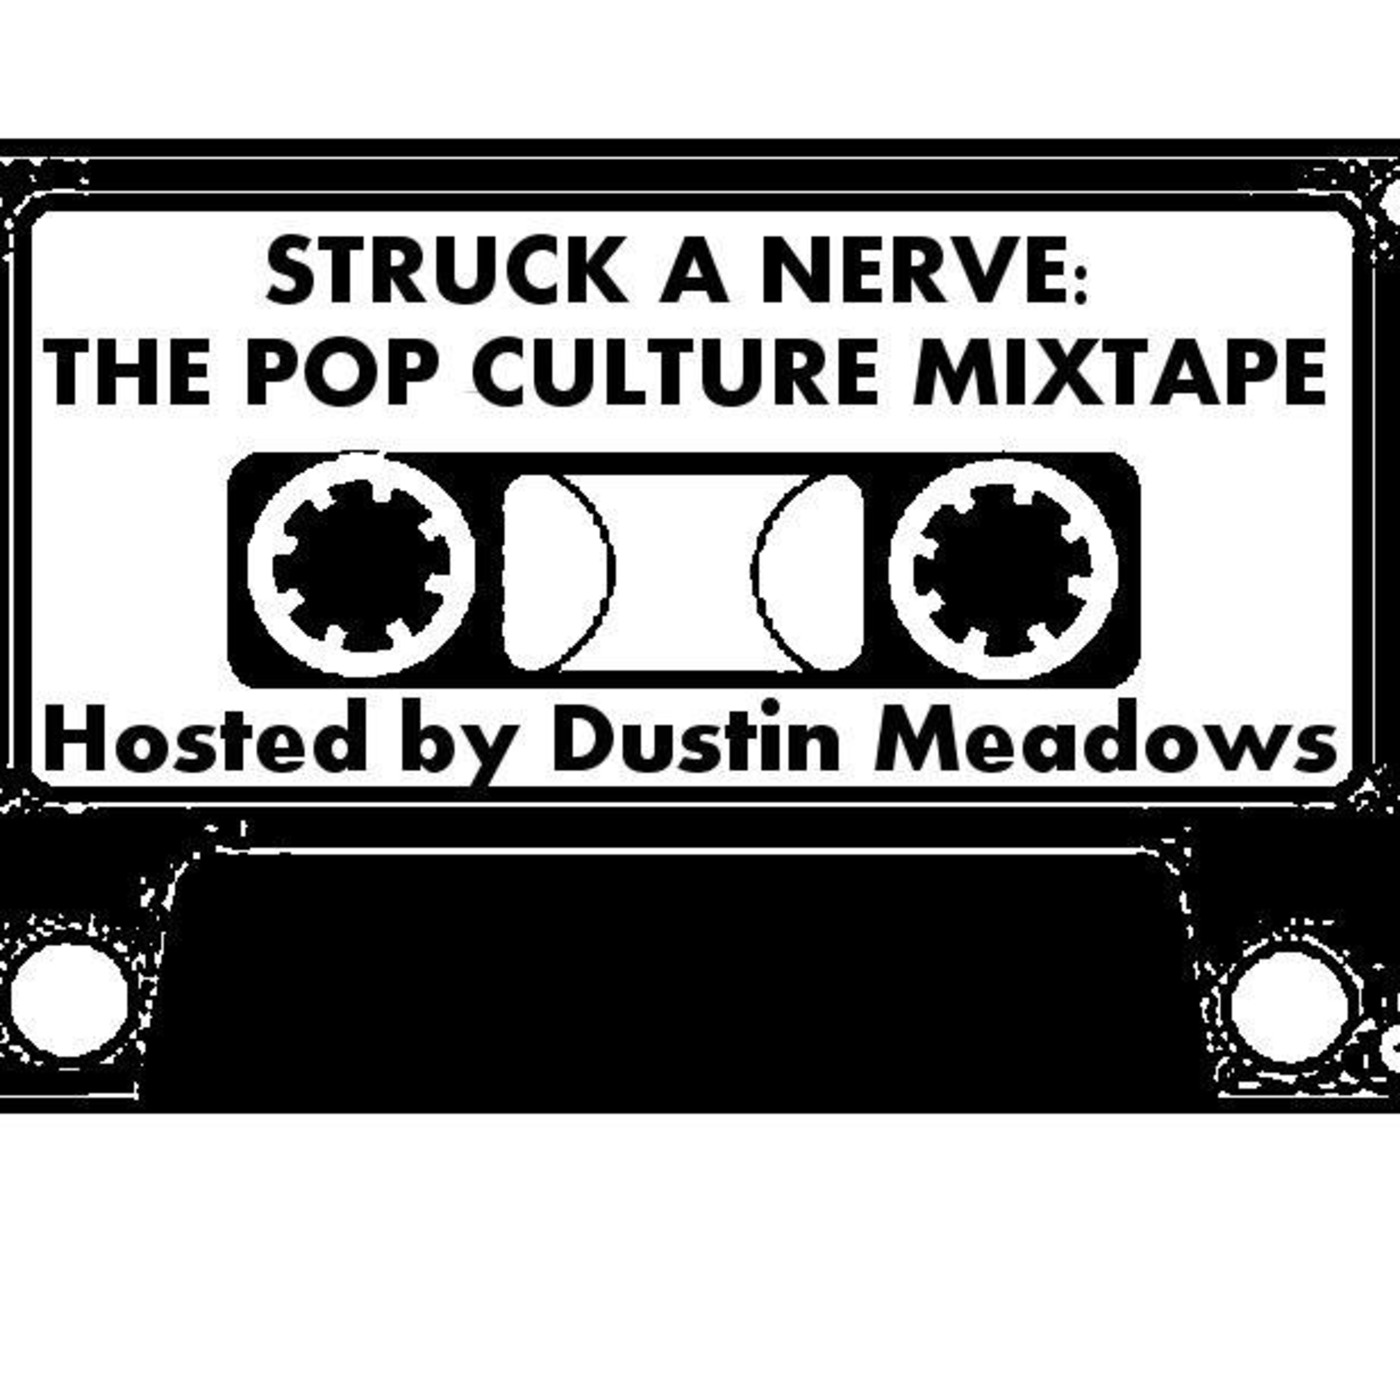 Struck A Nerve: The Pop Culture Mixtape